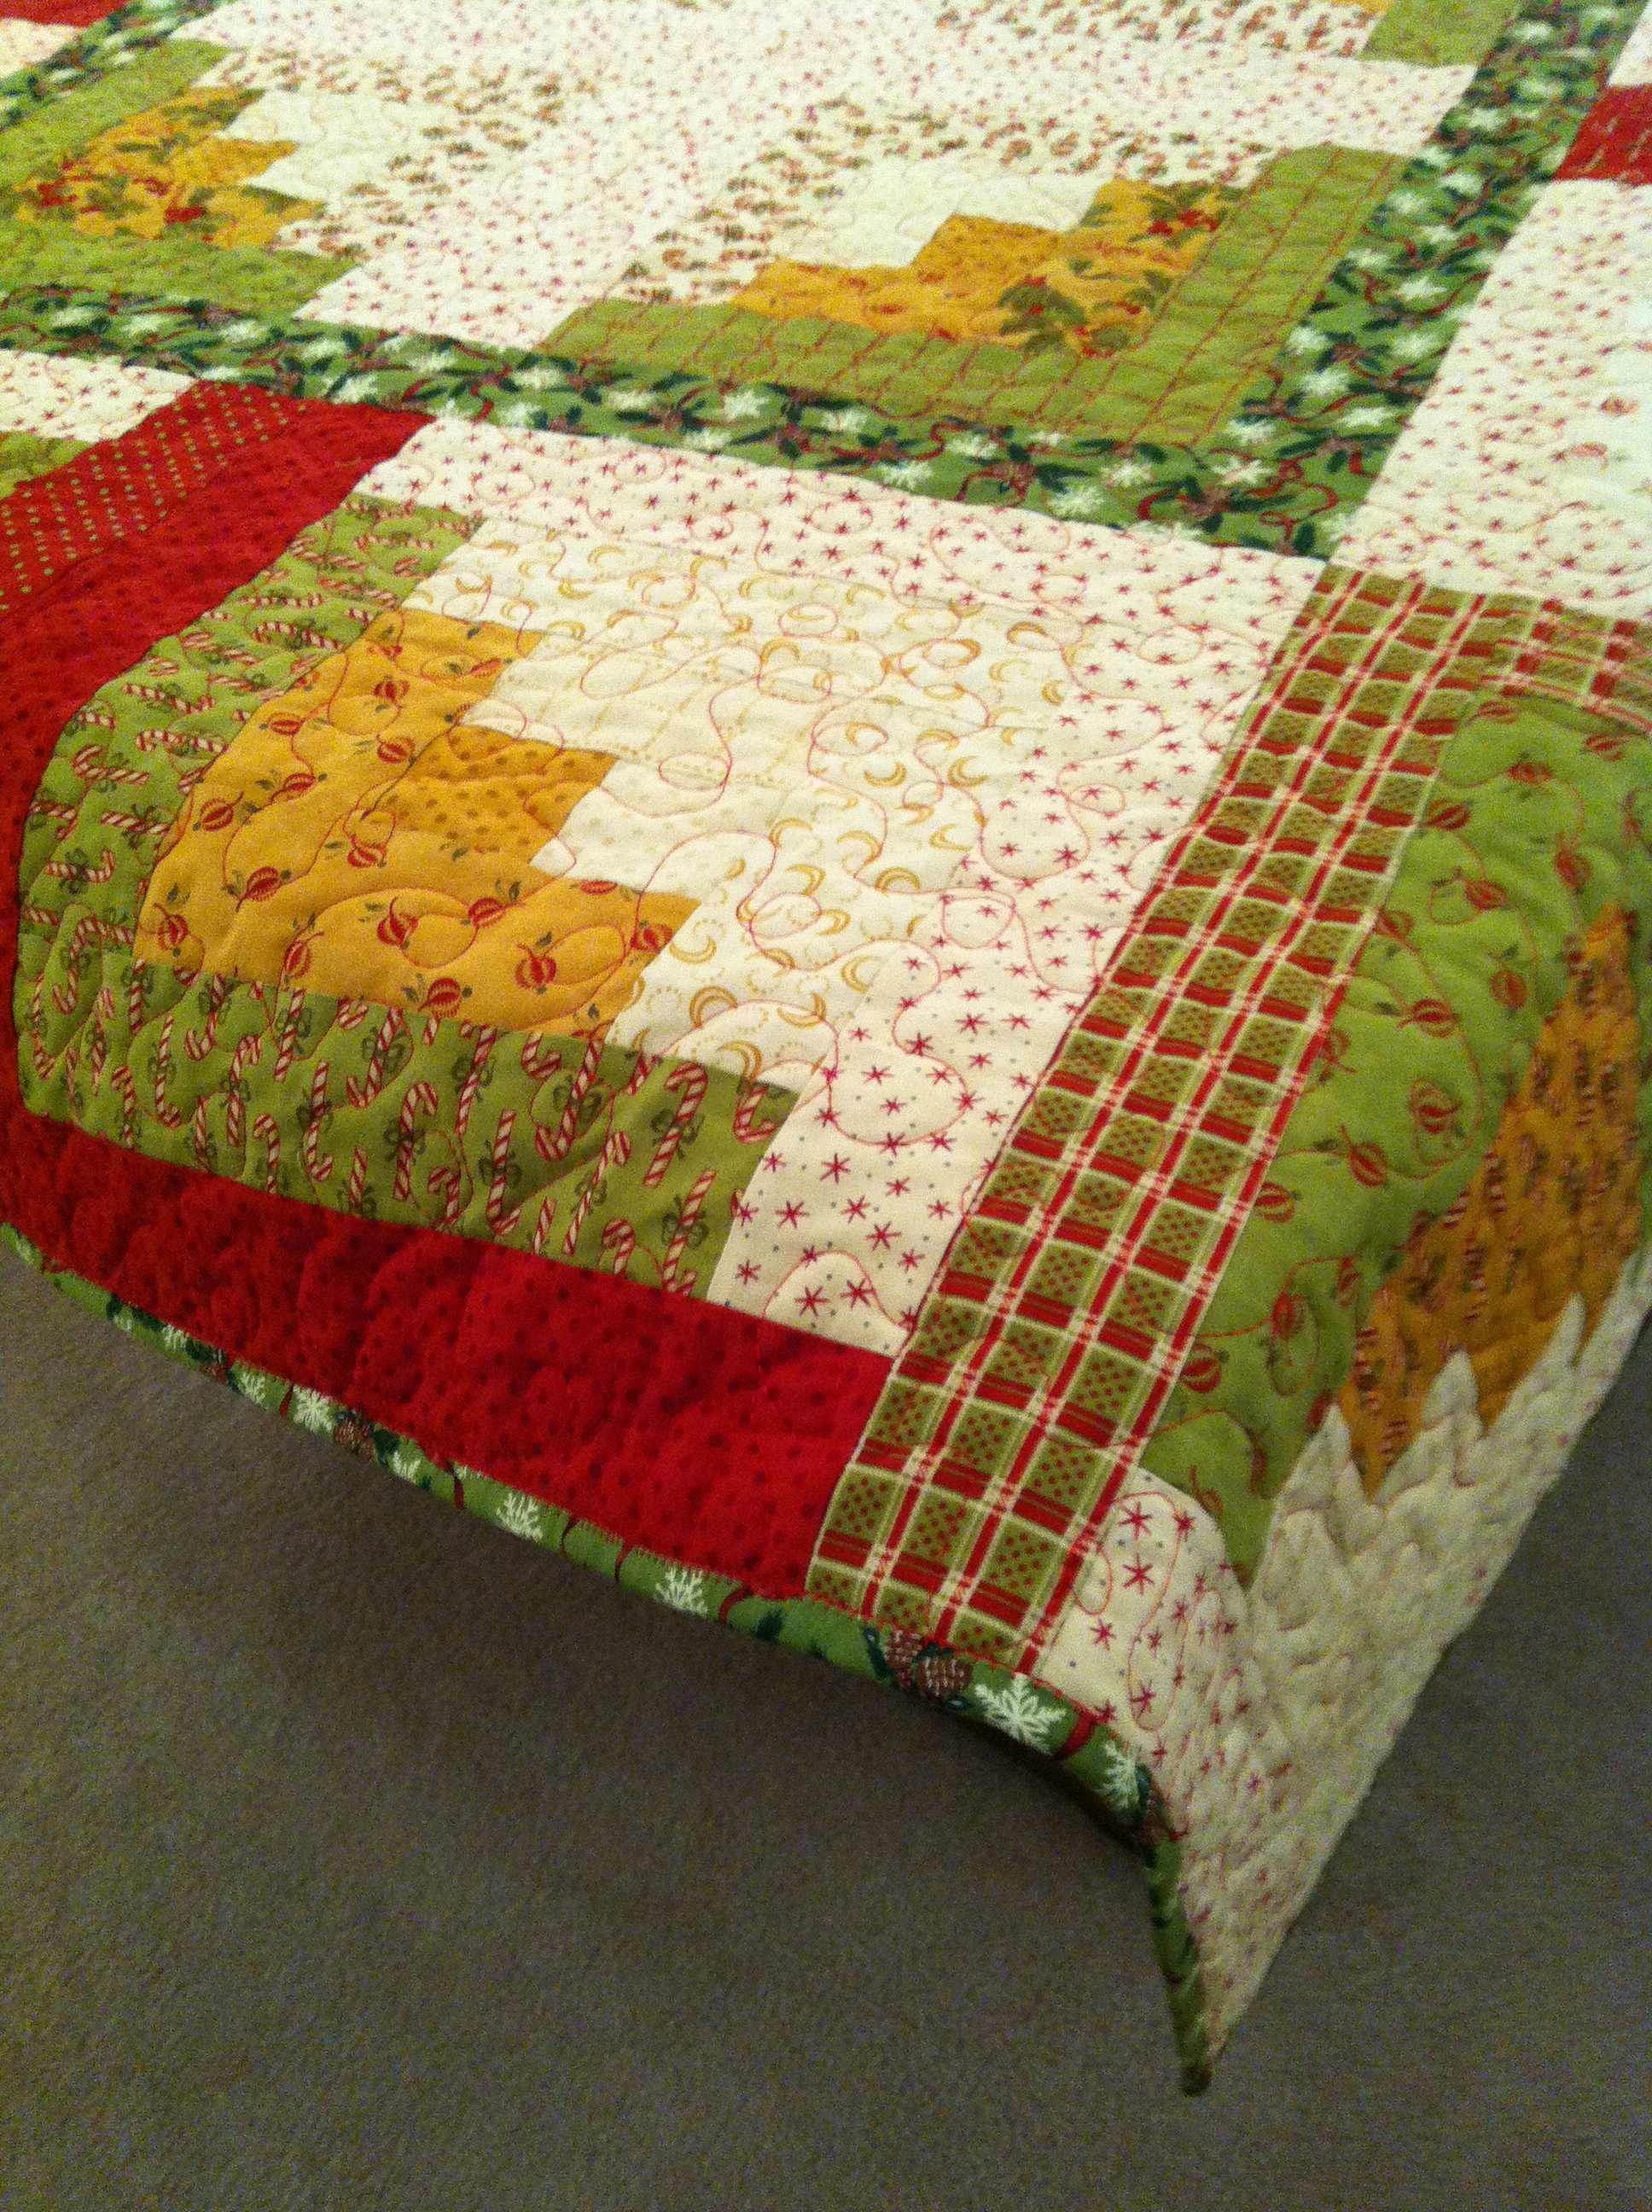 Log Cabin Christmas Quilt.Christmas Log Cabin Quilt Sewluxesew